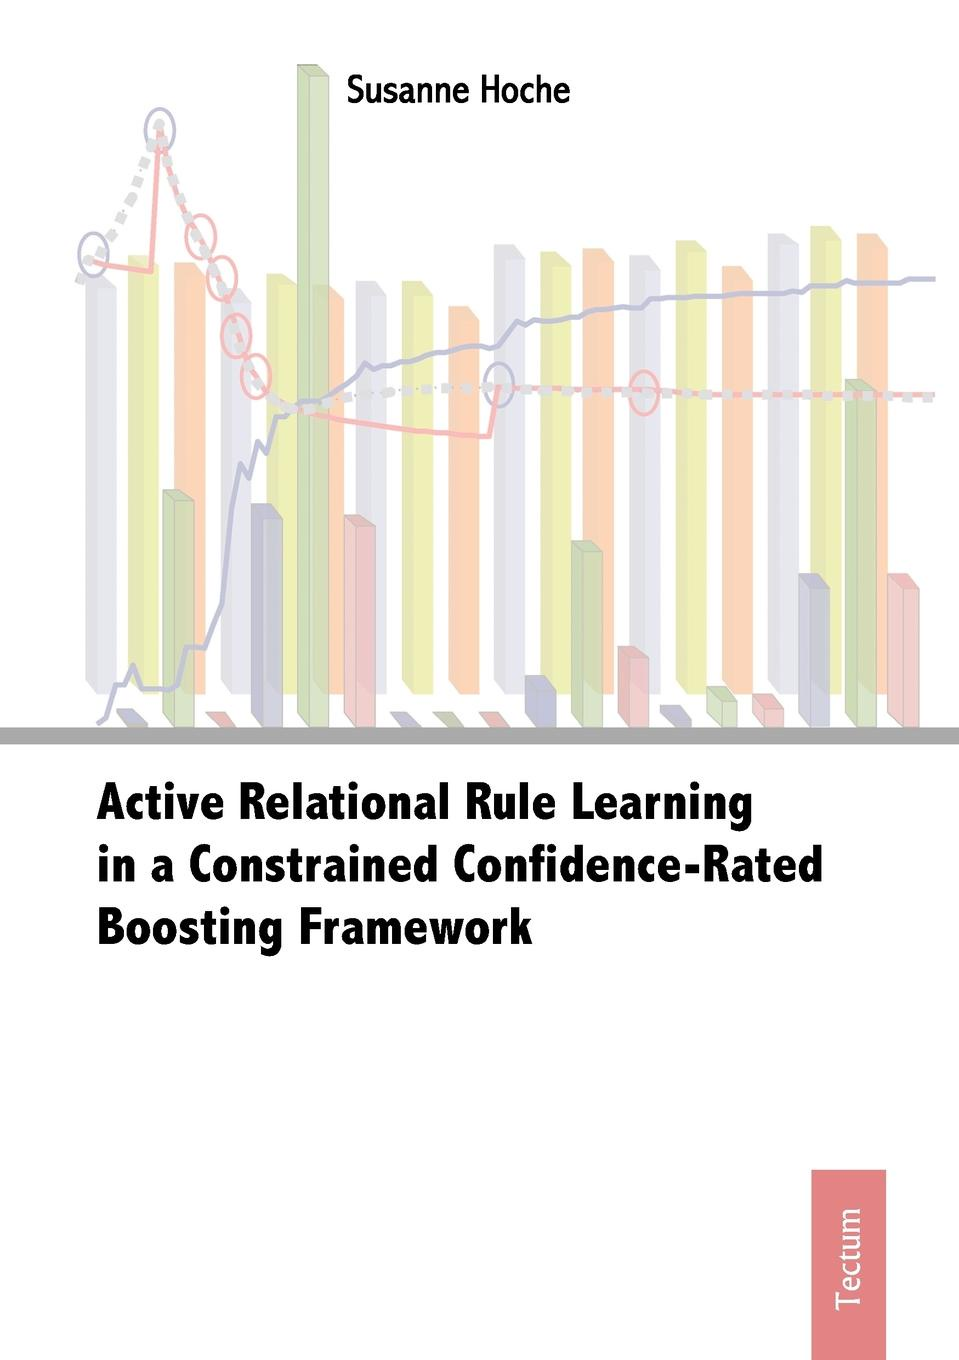 Susanne Hoche Active Relational Rule Learning in a Constrained Confidence-Rated Boosting Framework demystifying learning traps in a new product innovation process